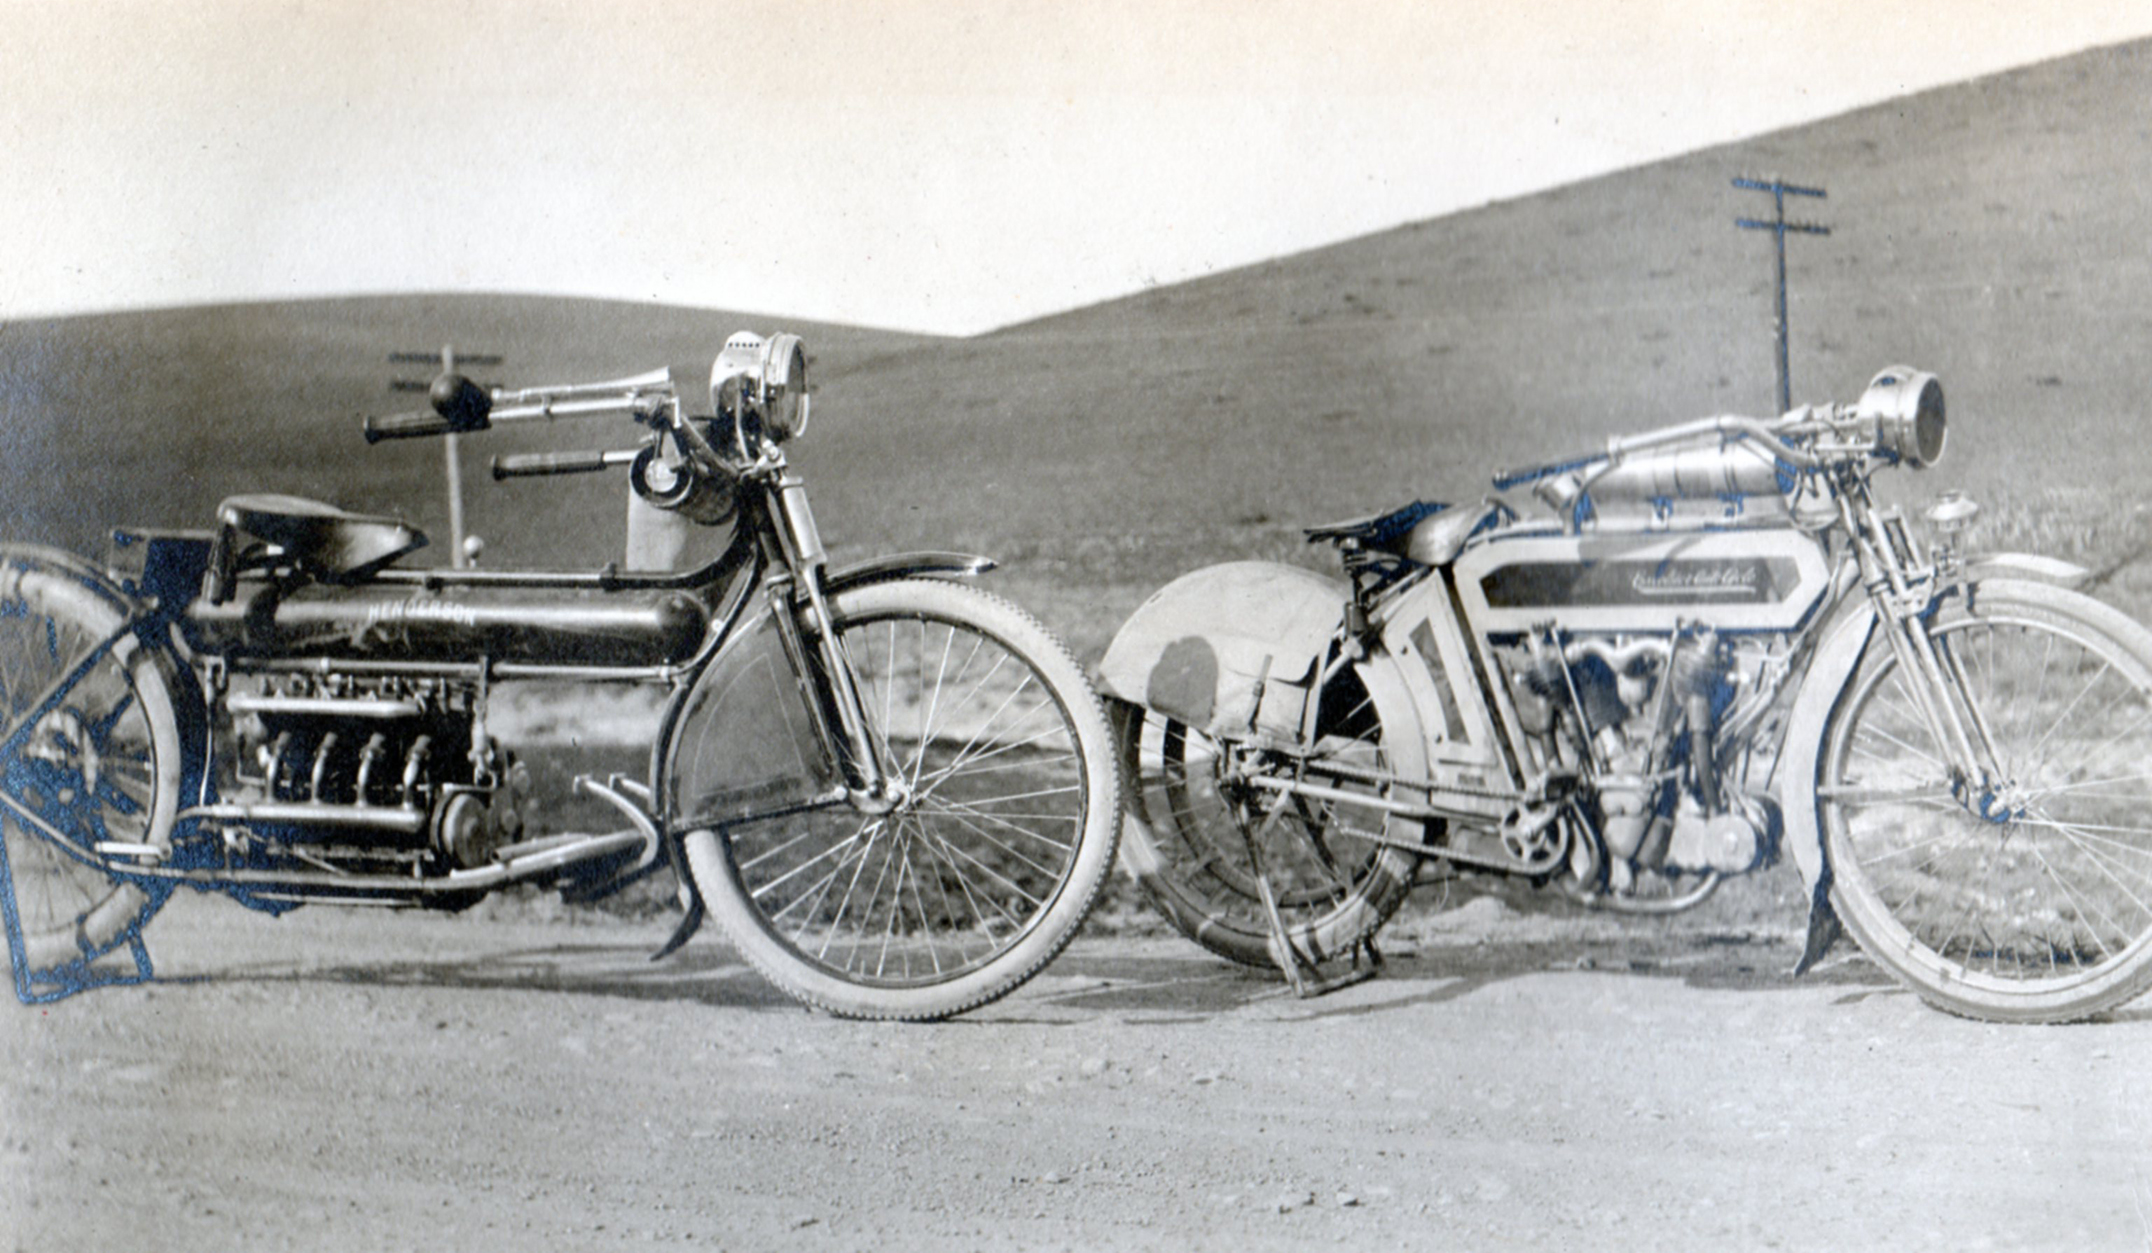 Out on the road. A first model 1912 Henderson and an Excelsior twin loaded with acessories.